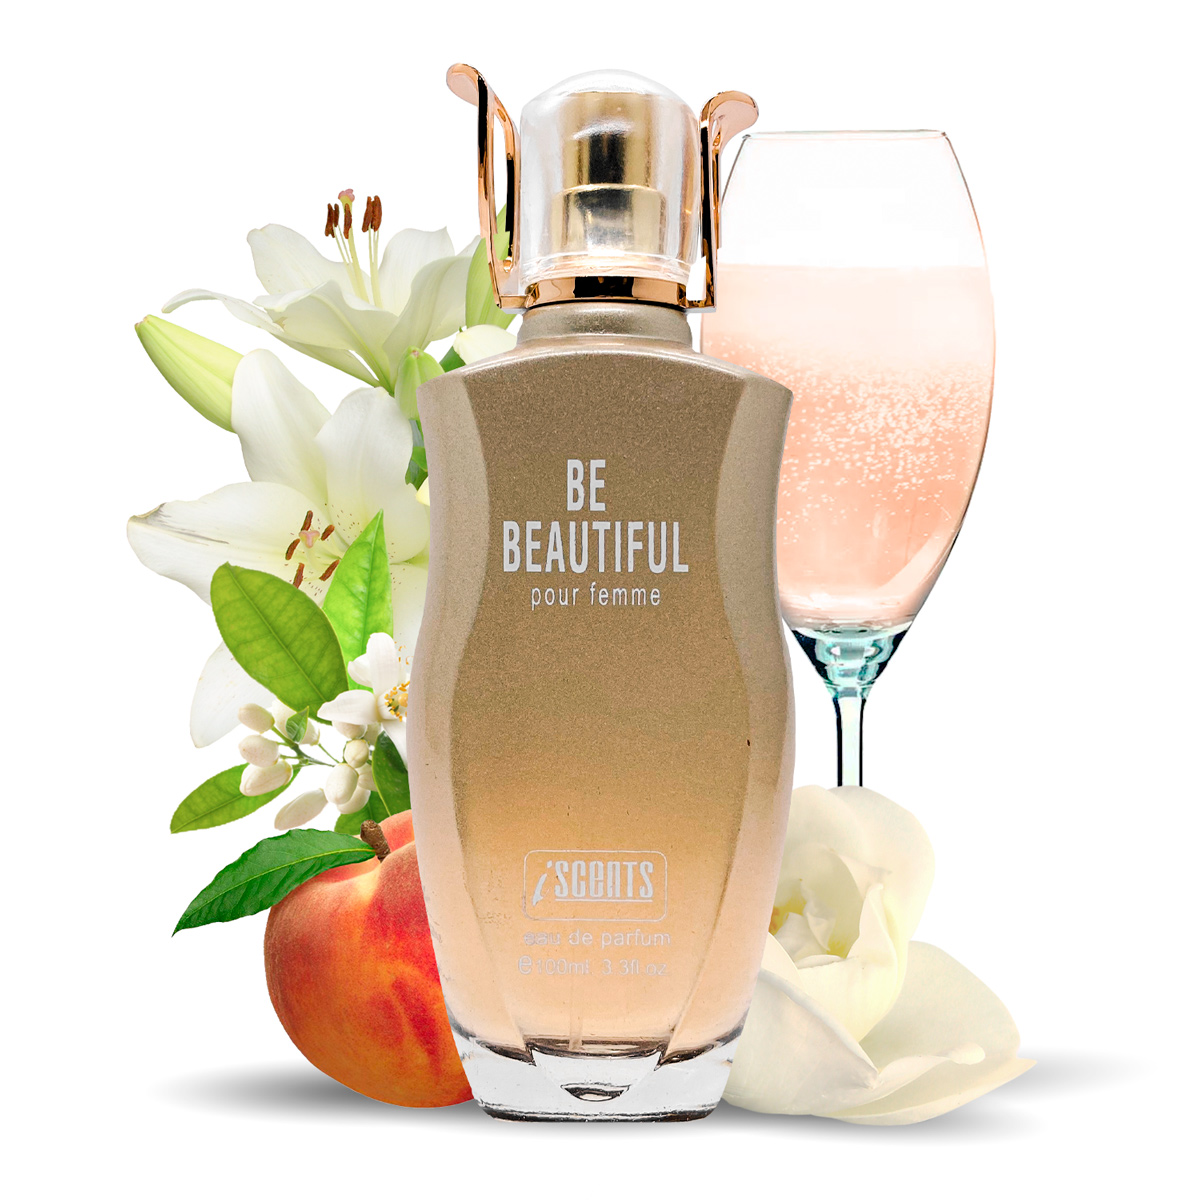 Kit 2 Perfumes Importados Be Beautiful e Excess I Scents